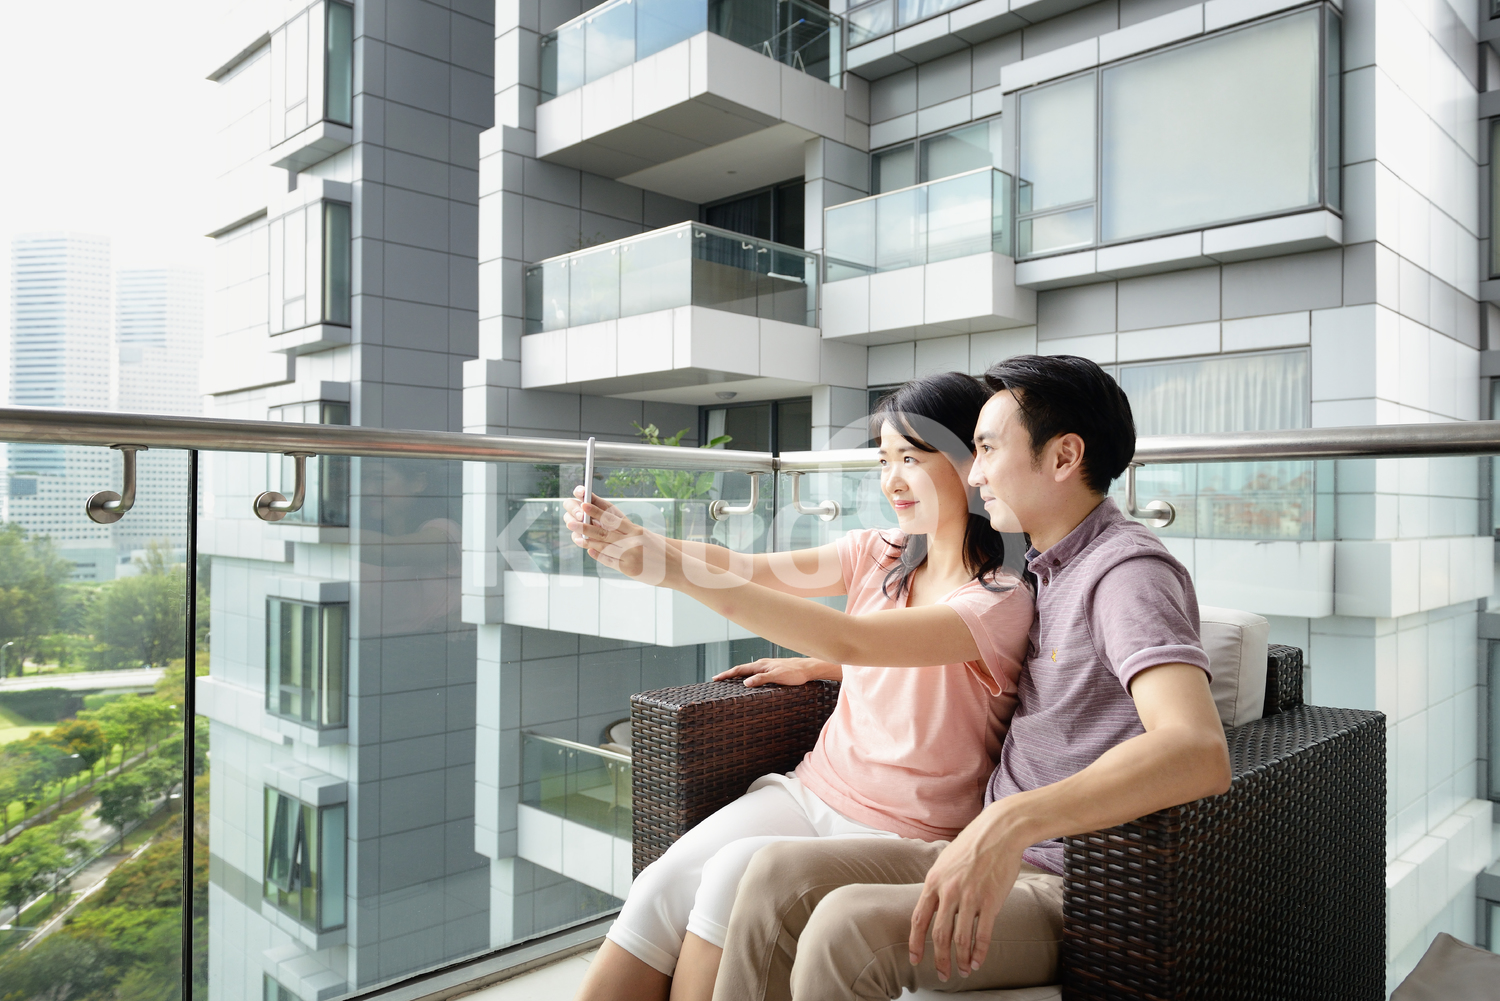 Husband and wife taking a selfie on a condo balcony